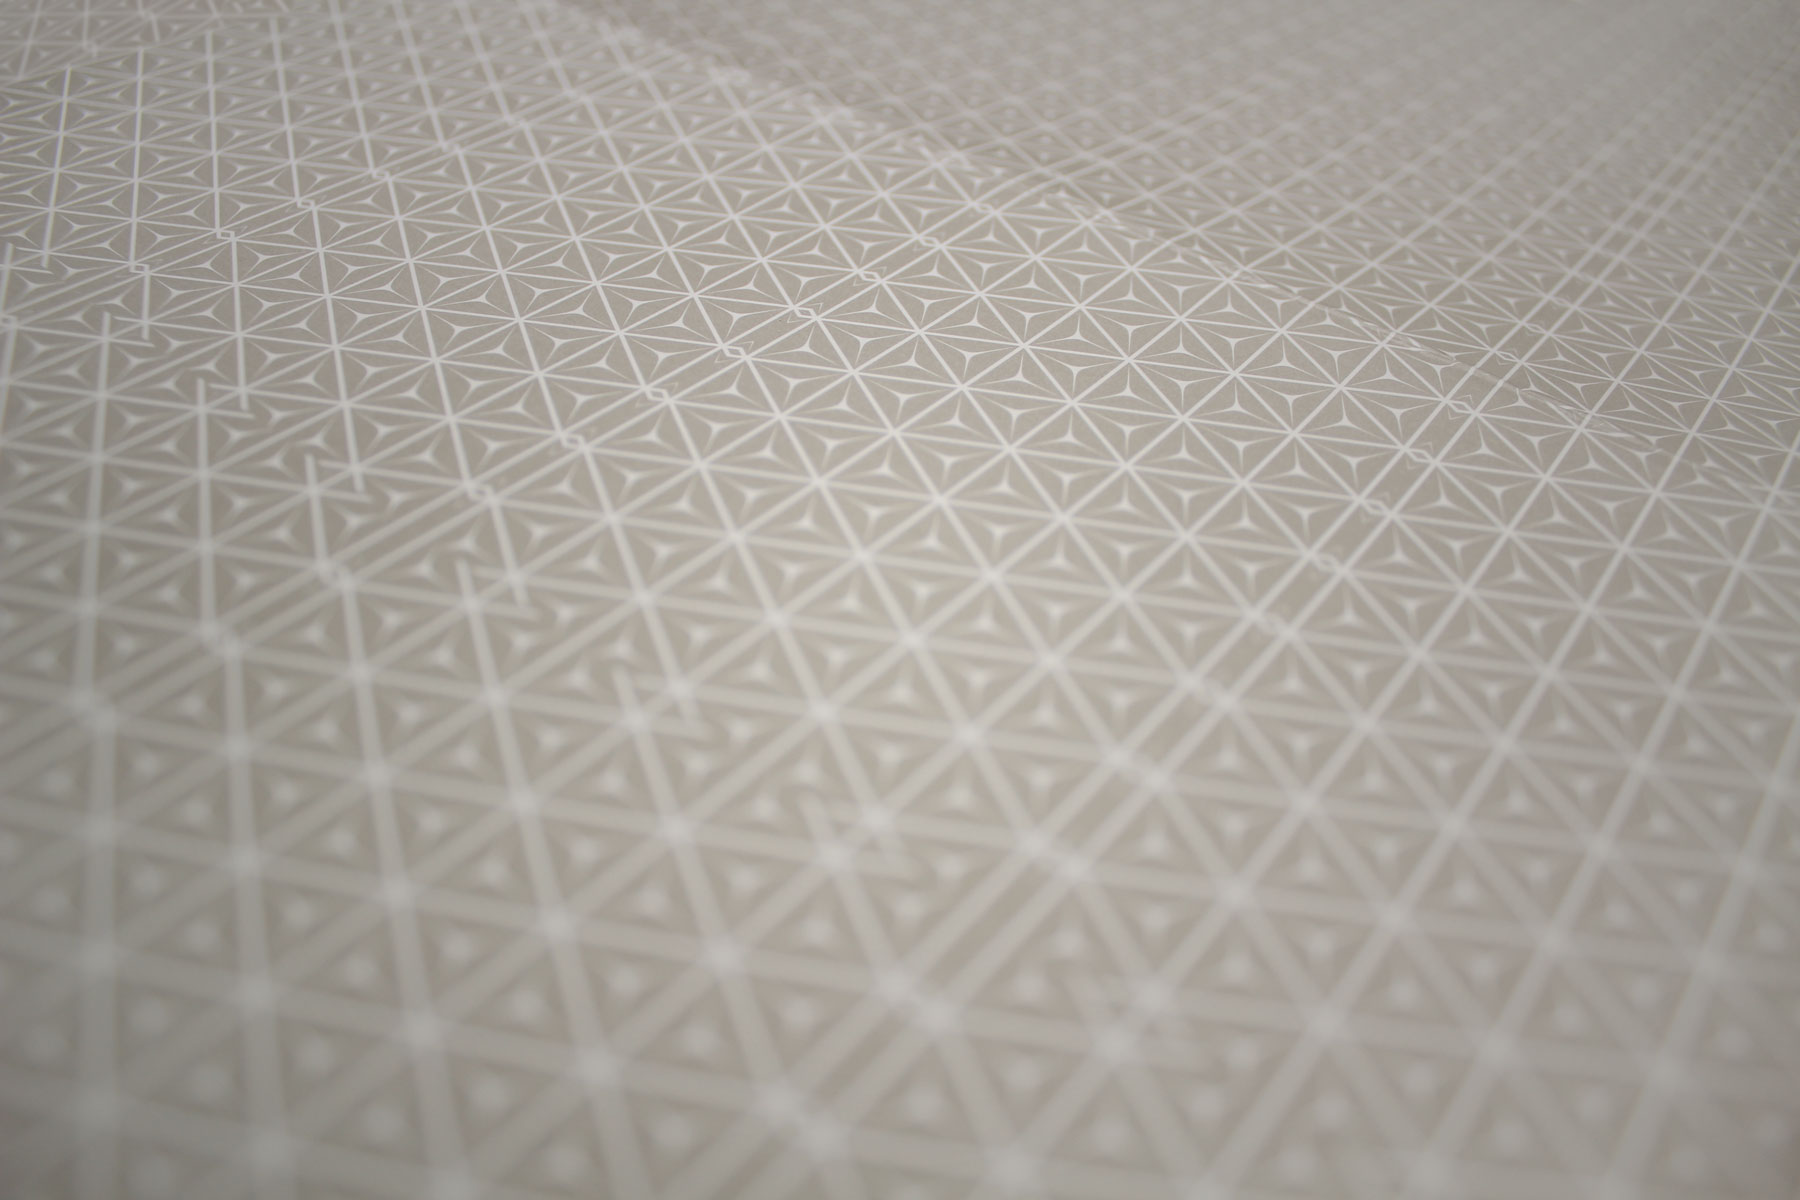 A subtle visual pattern device is used throughout the identity, conveying quality and prestige.